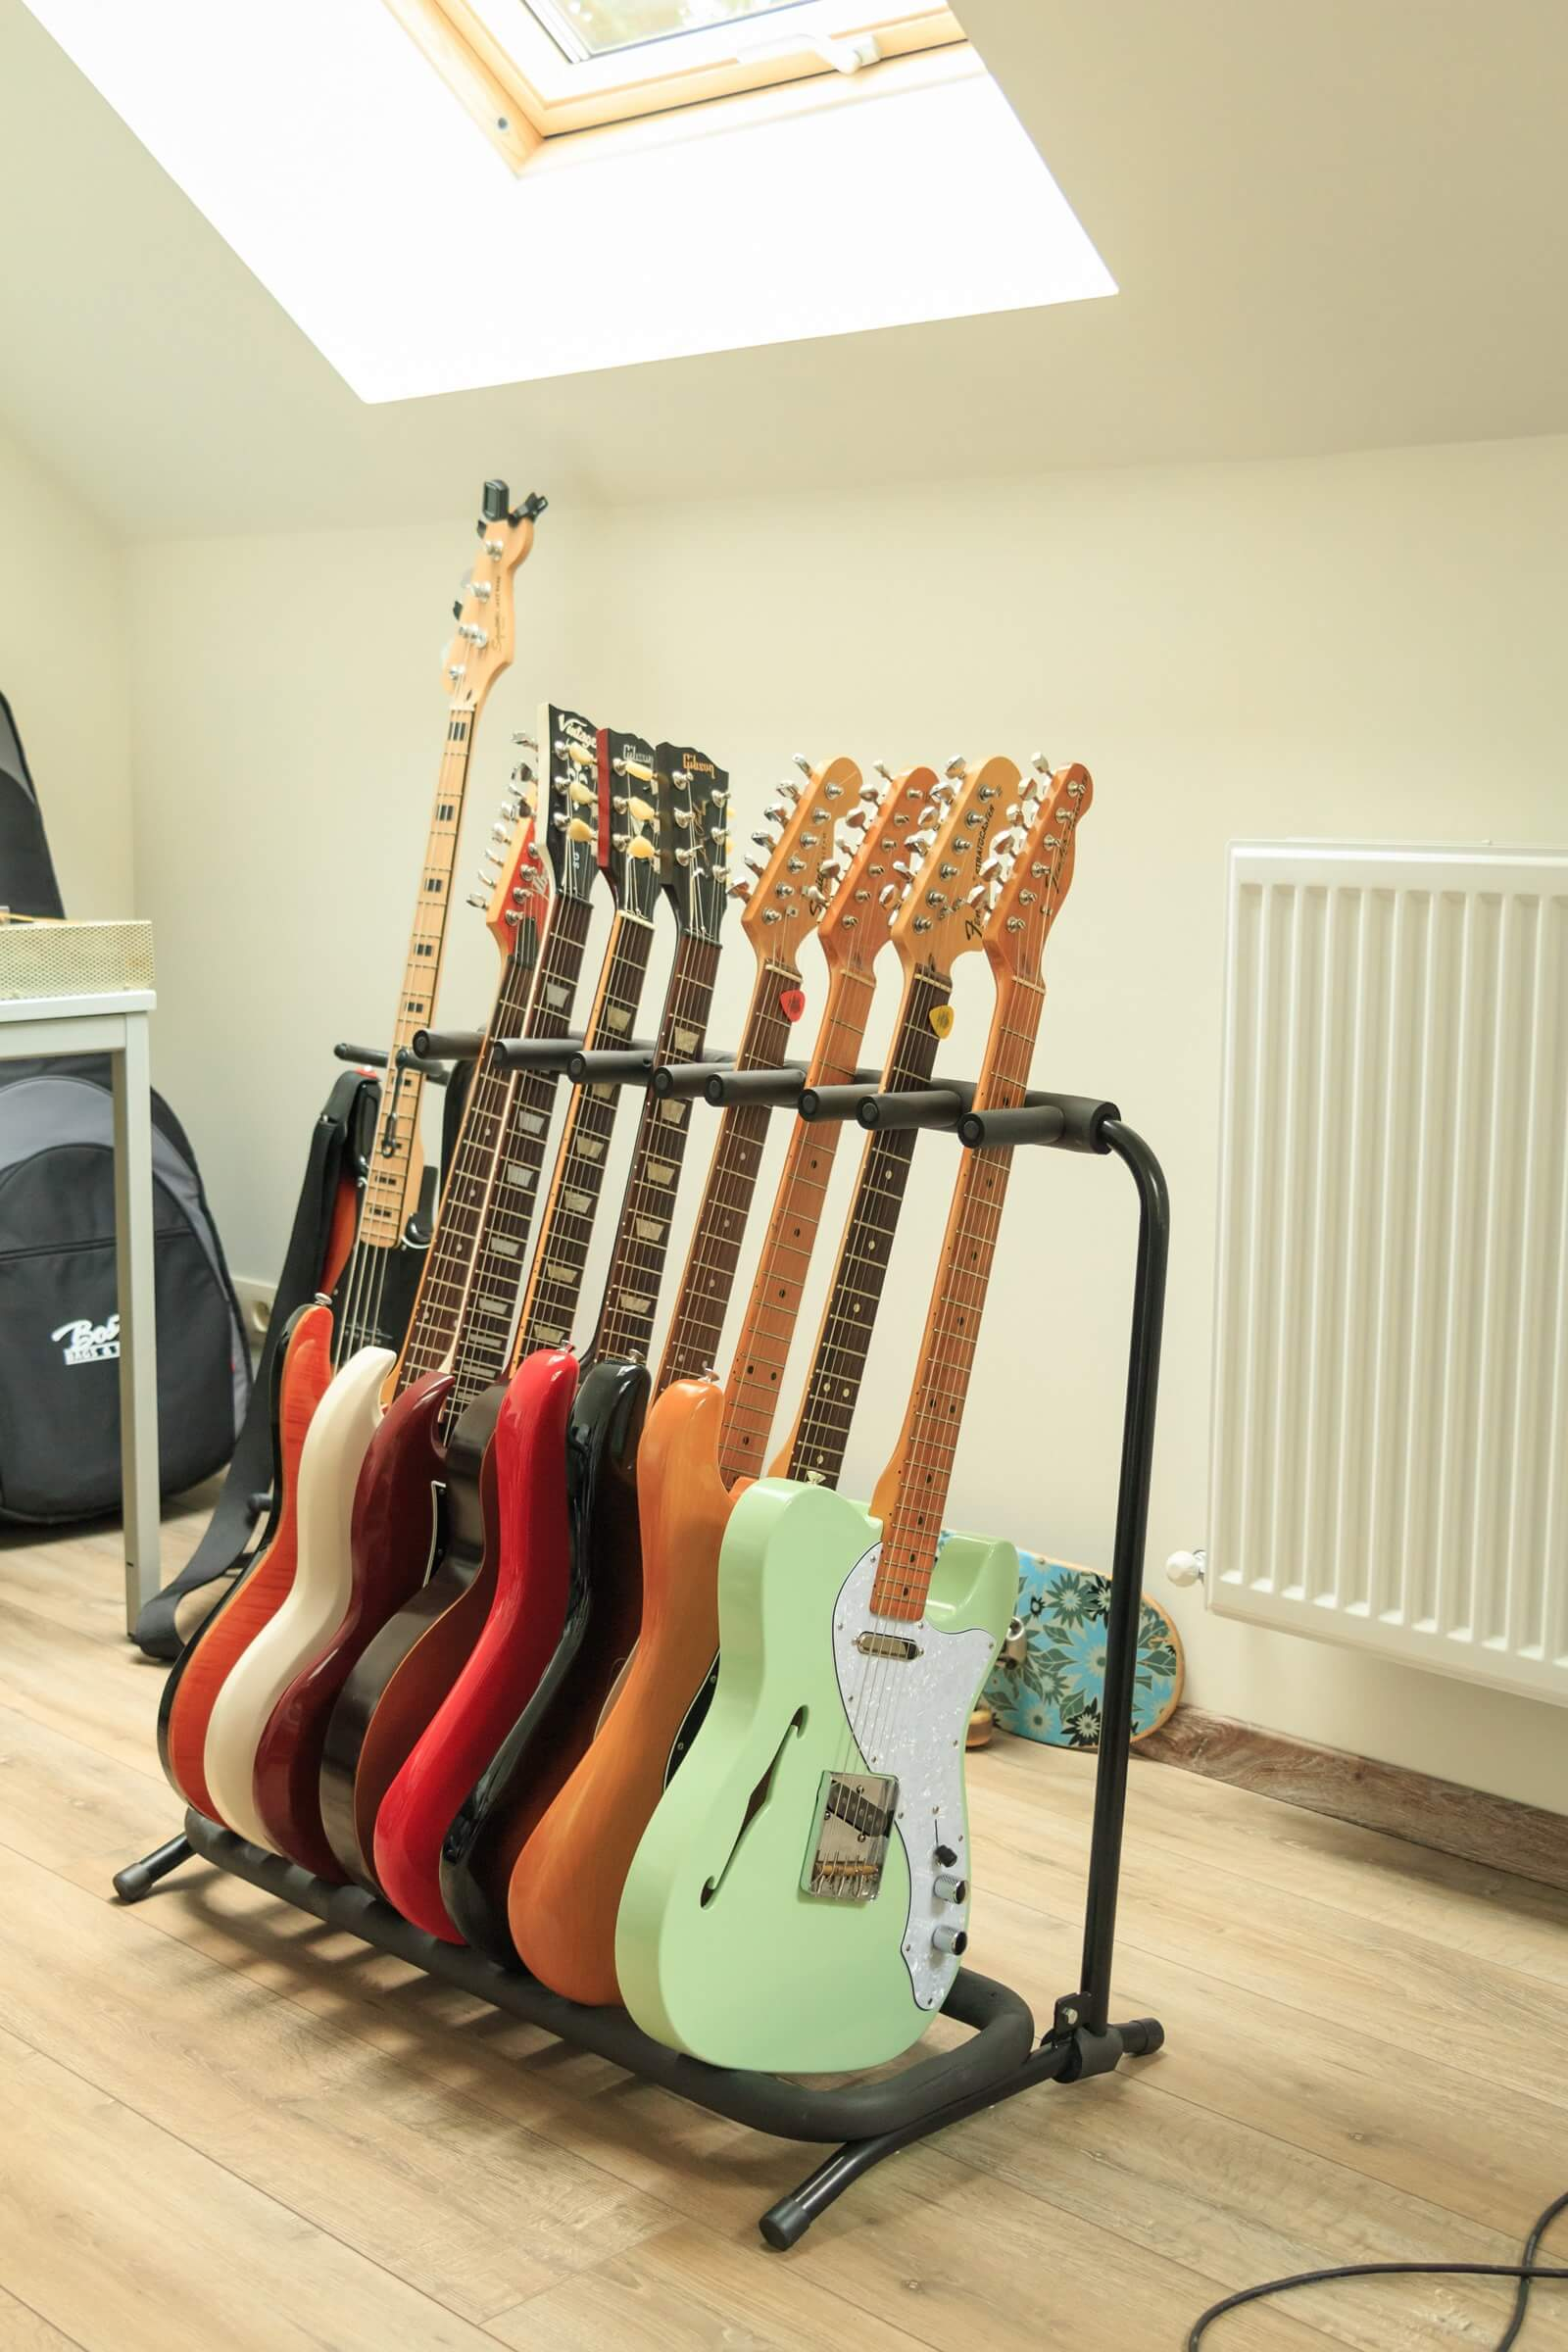 A Telecaster Thinline on a guitar rack holding several electric guitars